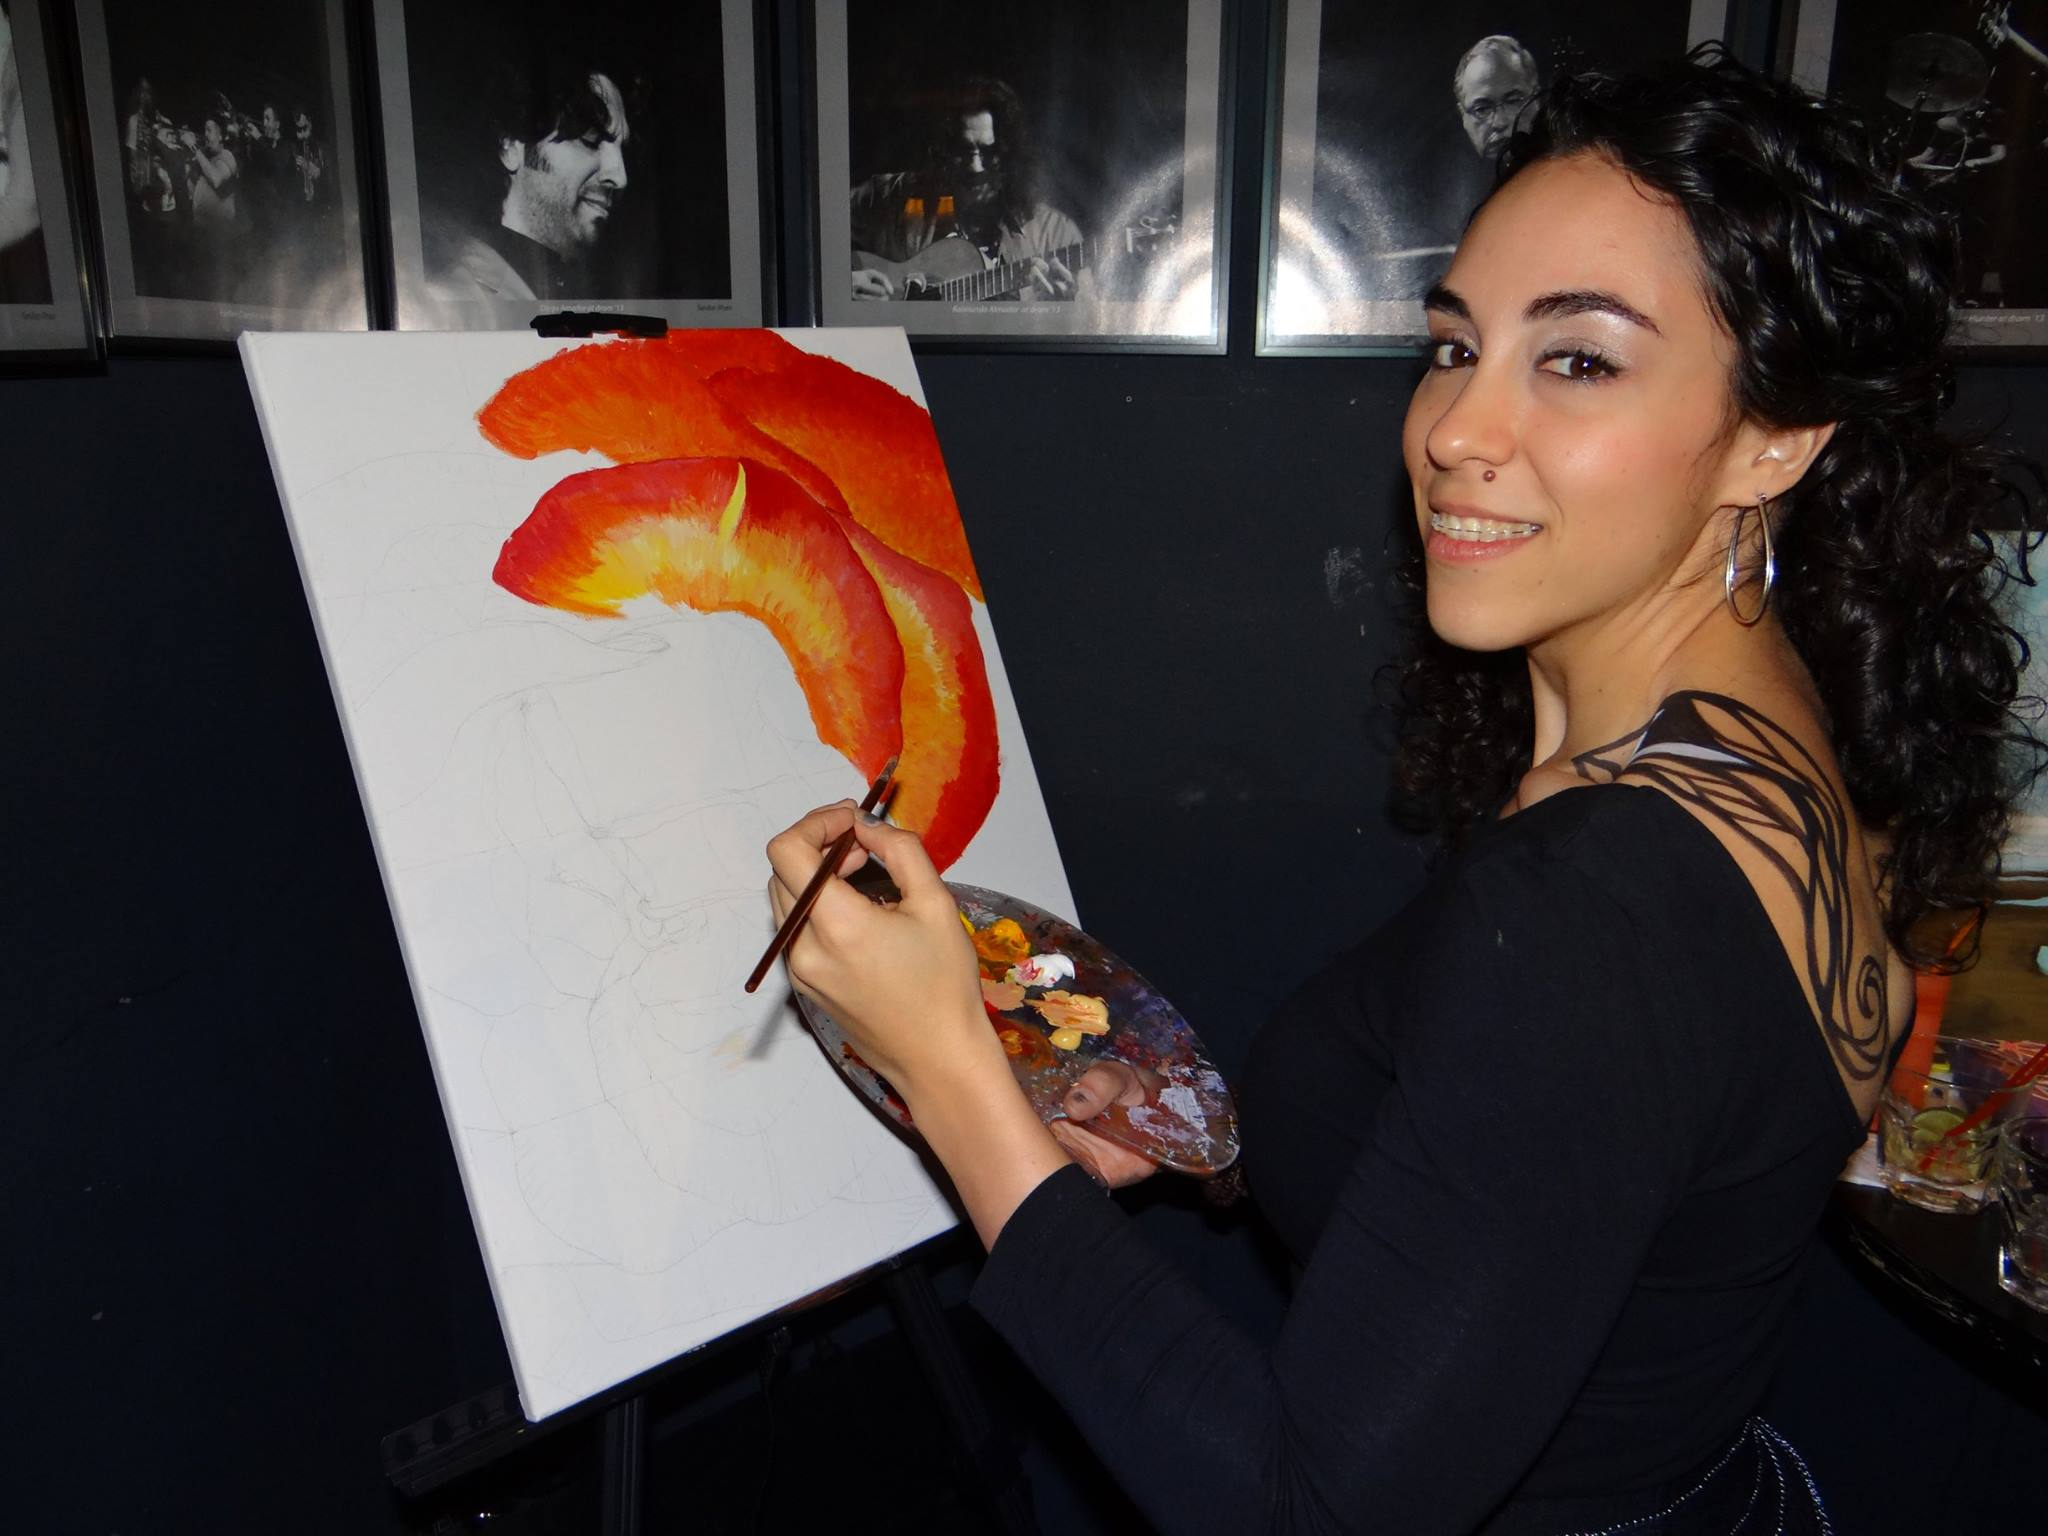 Natalia Zamparini is one of the five artists that will teach children about acrylic painting